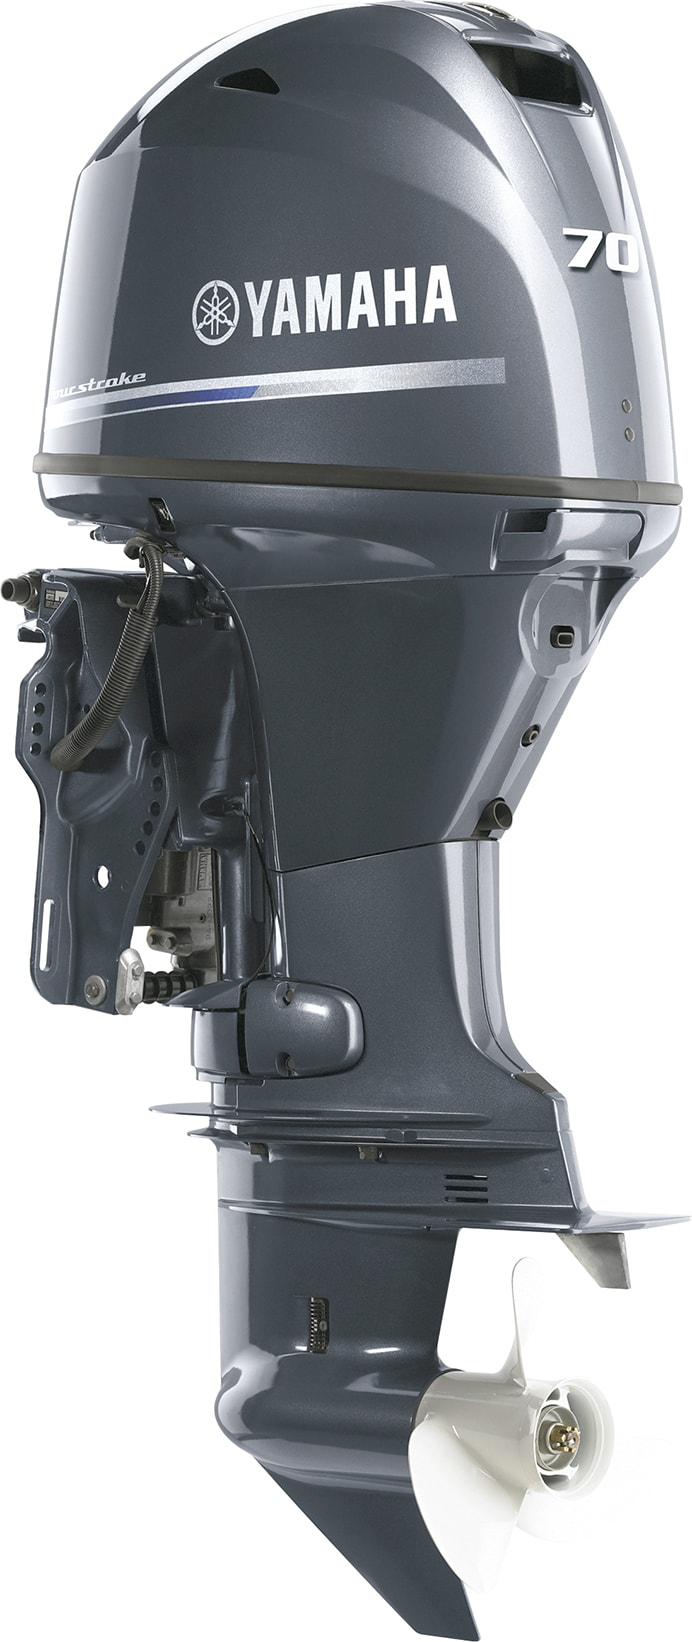 Yamaha Outboard Financing Application